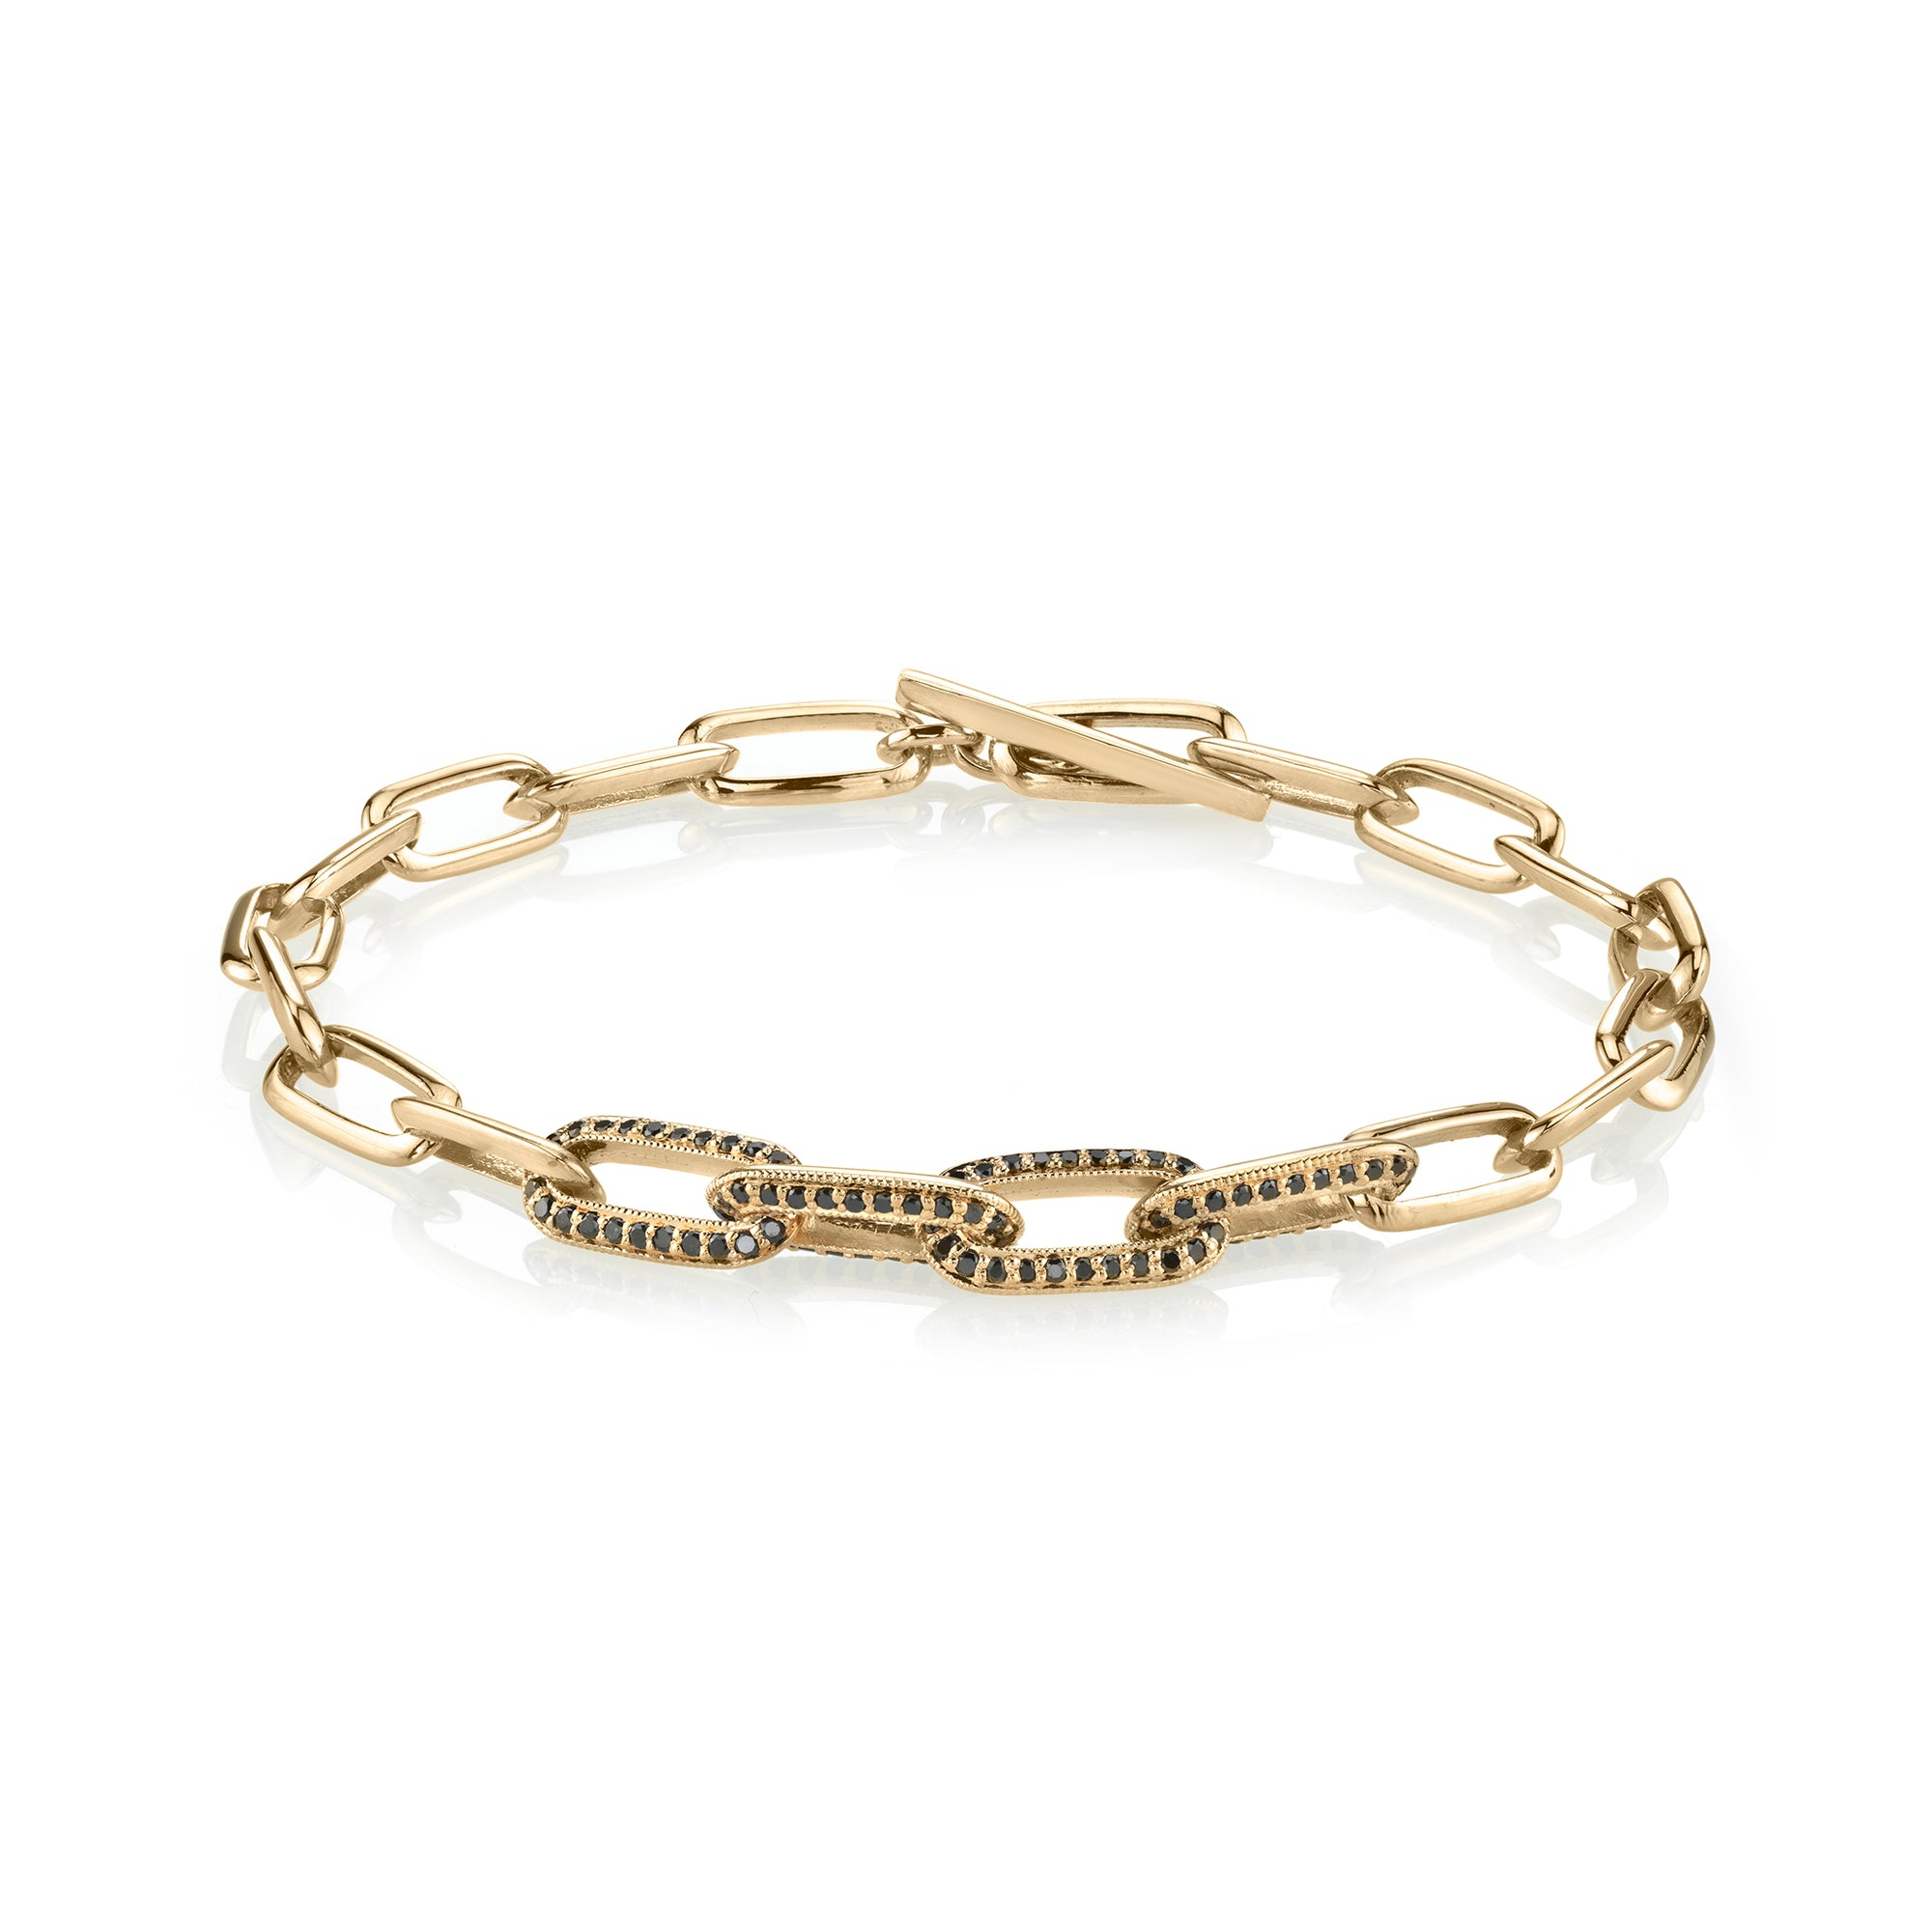 Knife Edge Oval Link Chain Bracelet with Four Half-Pave Links